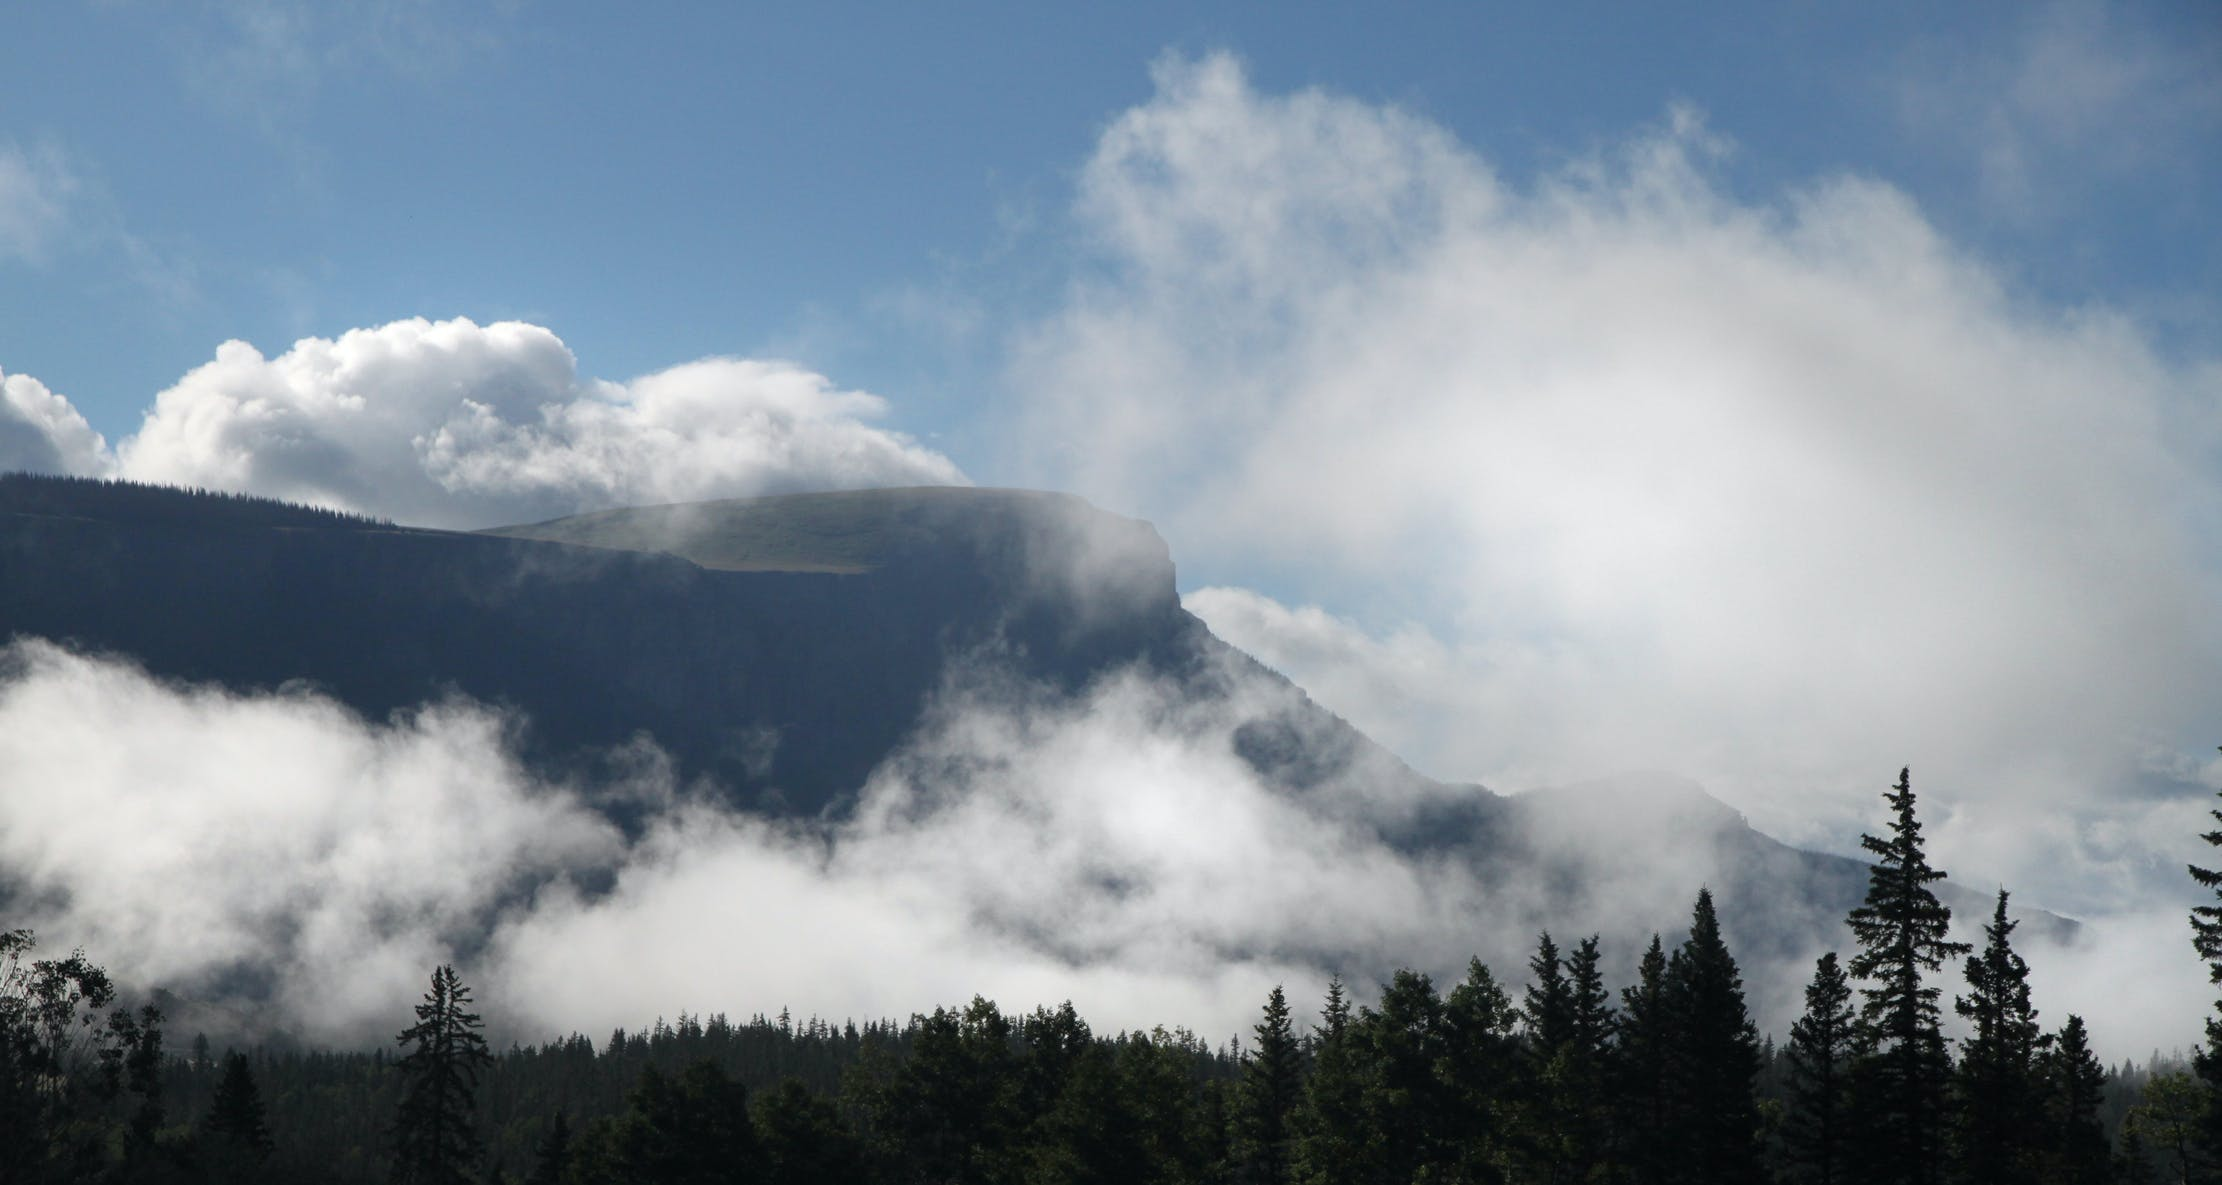 Silhouette of Trees and Mountain With White Clouds during Daytime